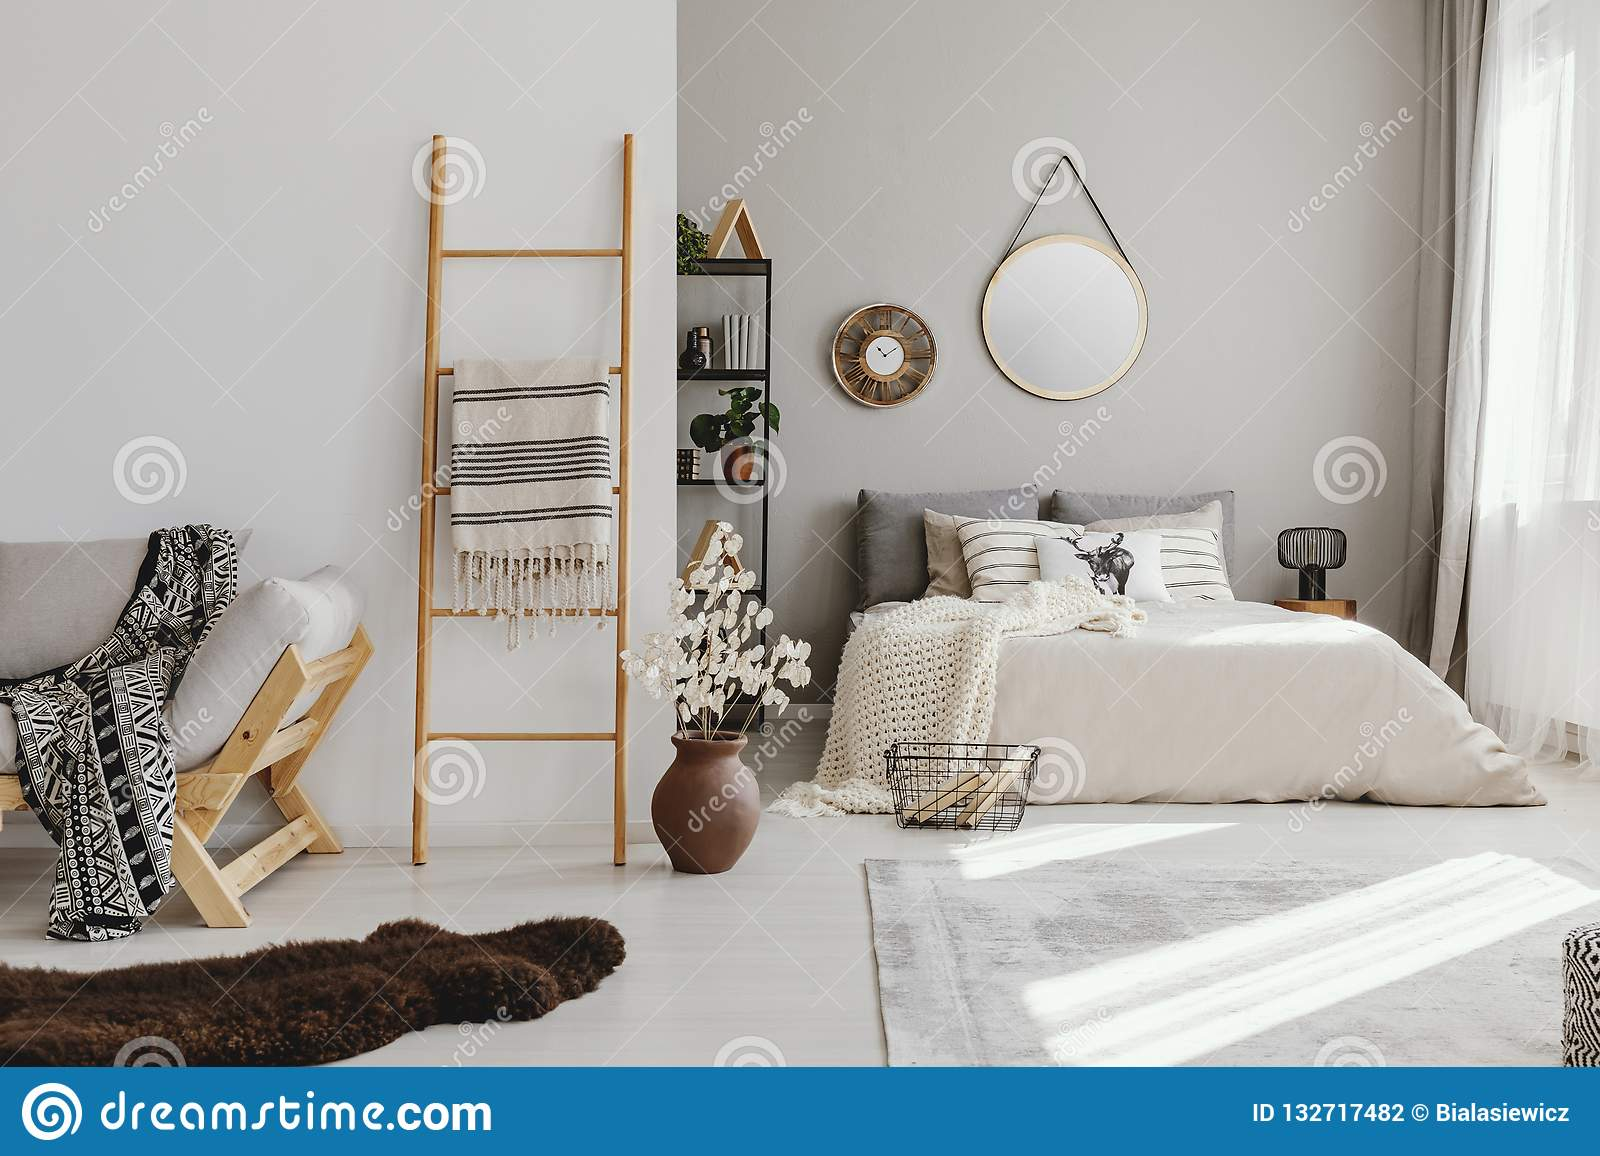 open space bedroom interior with window with curtains, mirror and clock on the wall, ladder with blanket,